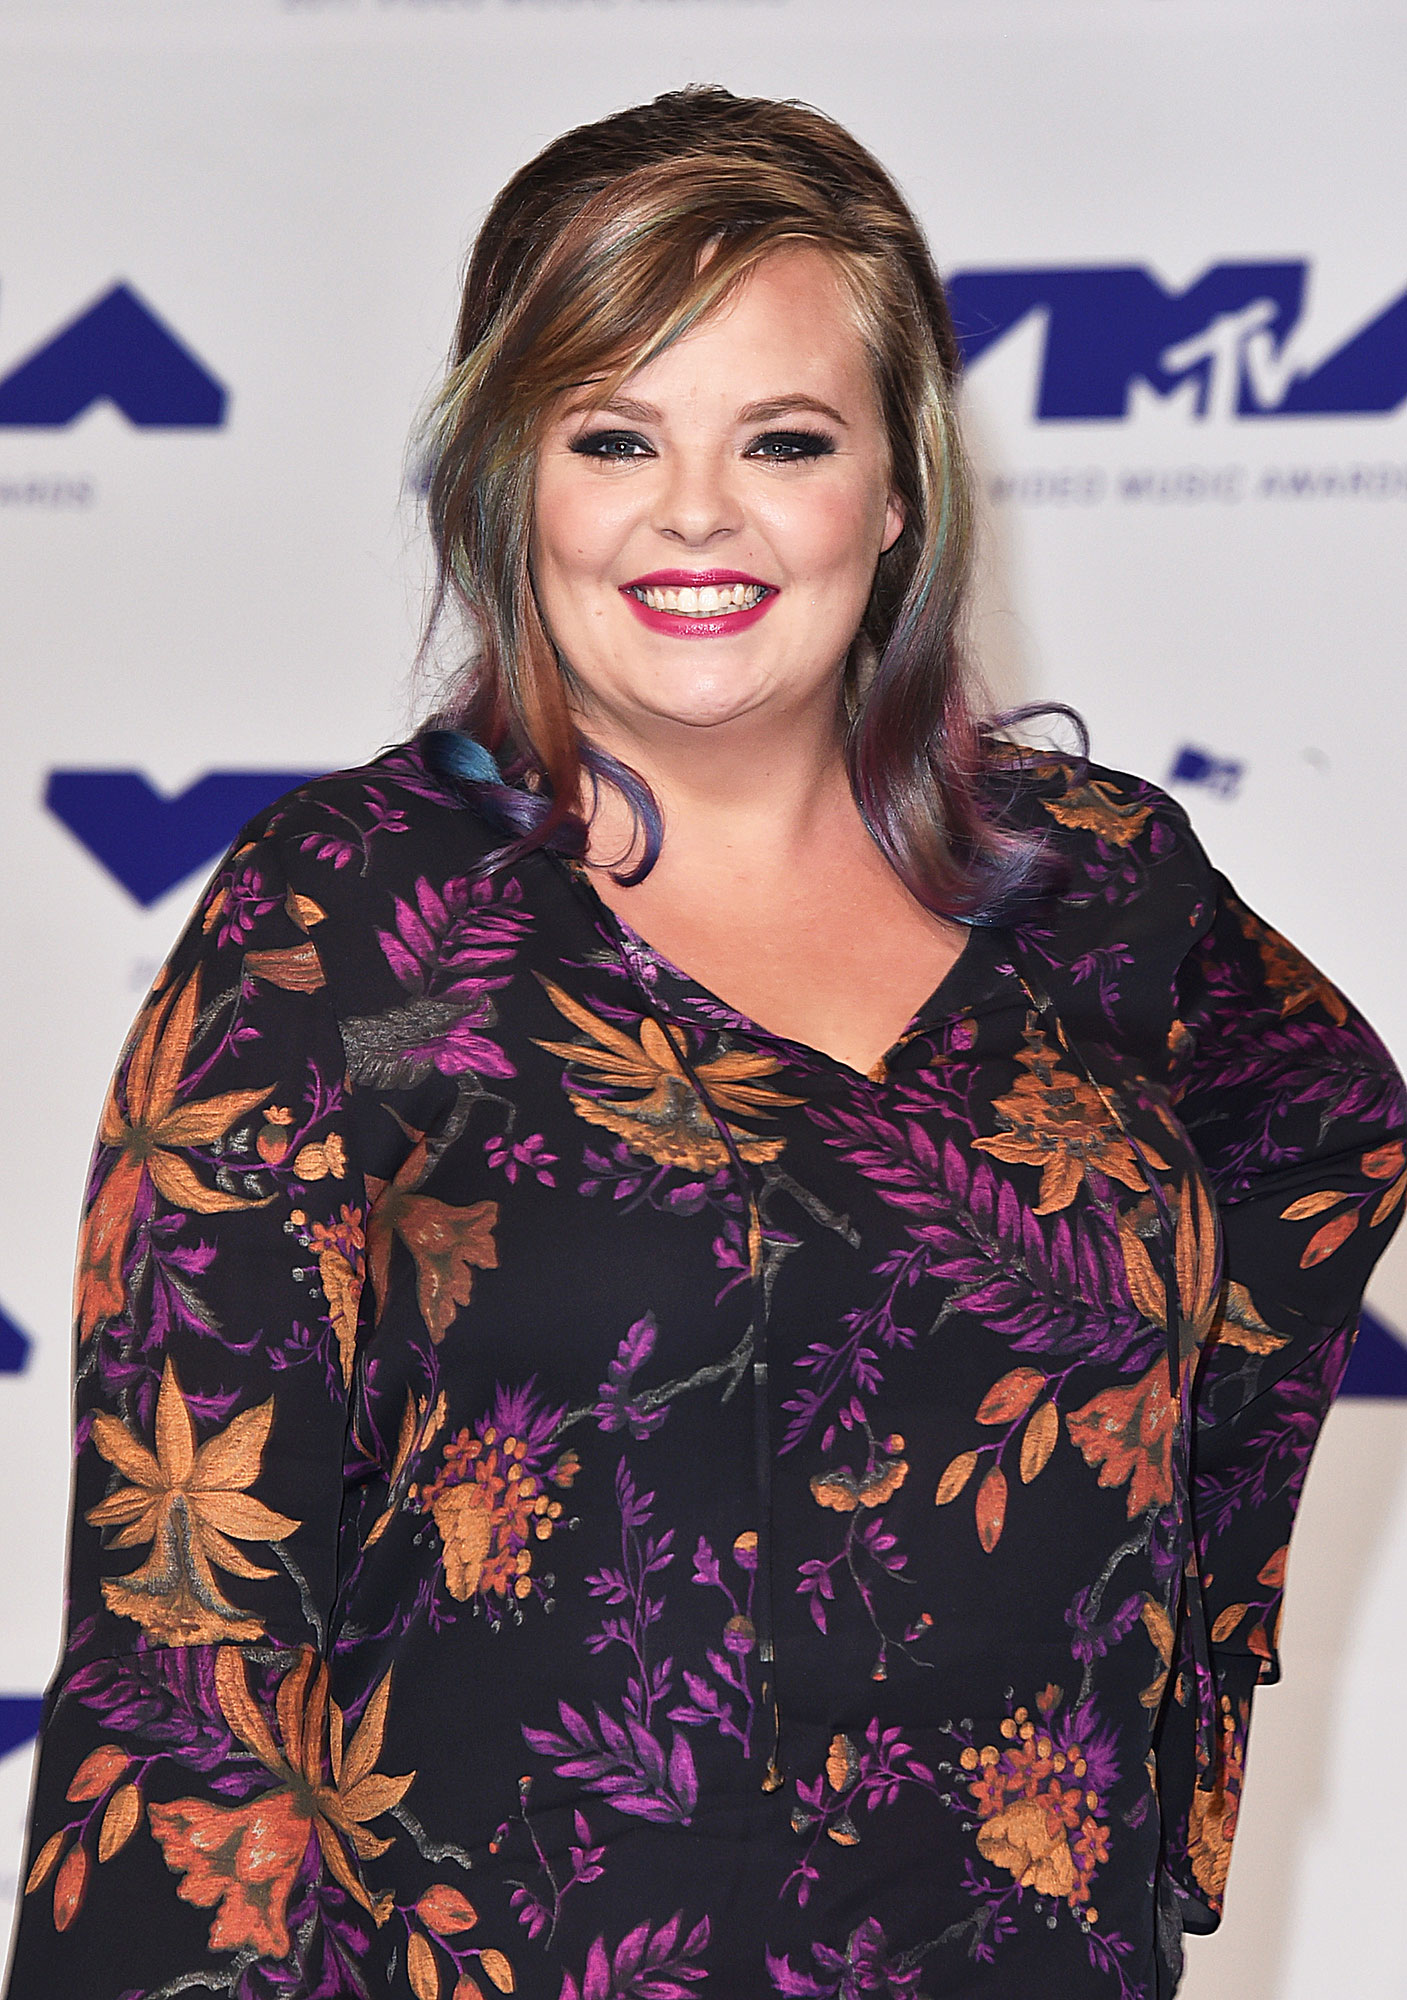 Catelynn Lowell - Catelynn Lowell attends the 2017 MTV Video Music Awards at The Forum on August 27, 2017 in Inglewood, California.